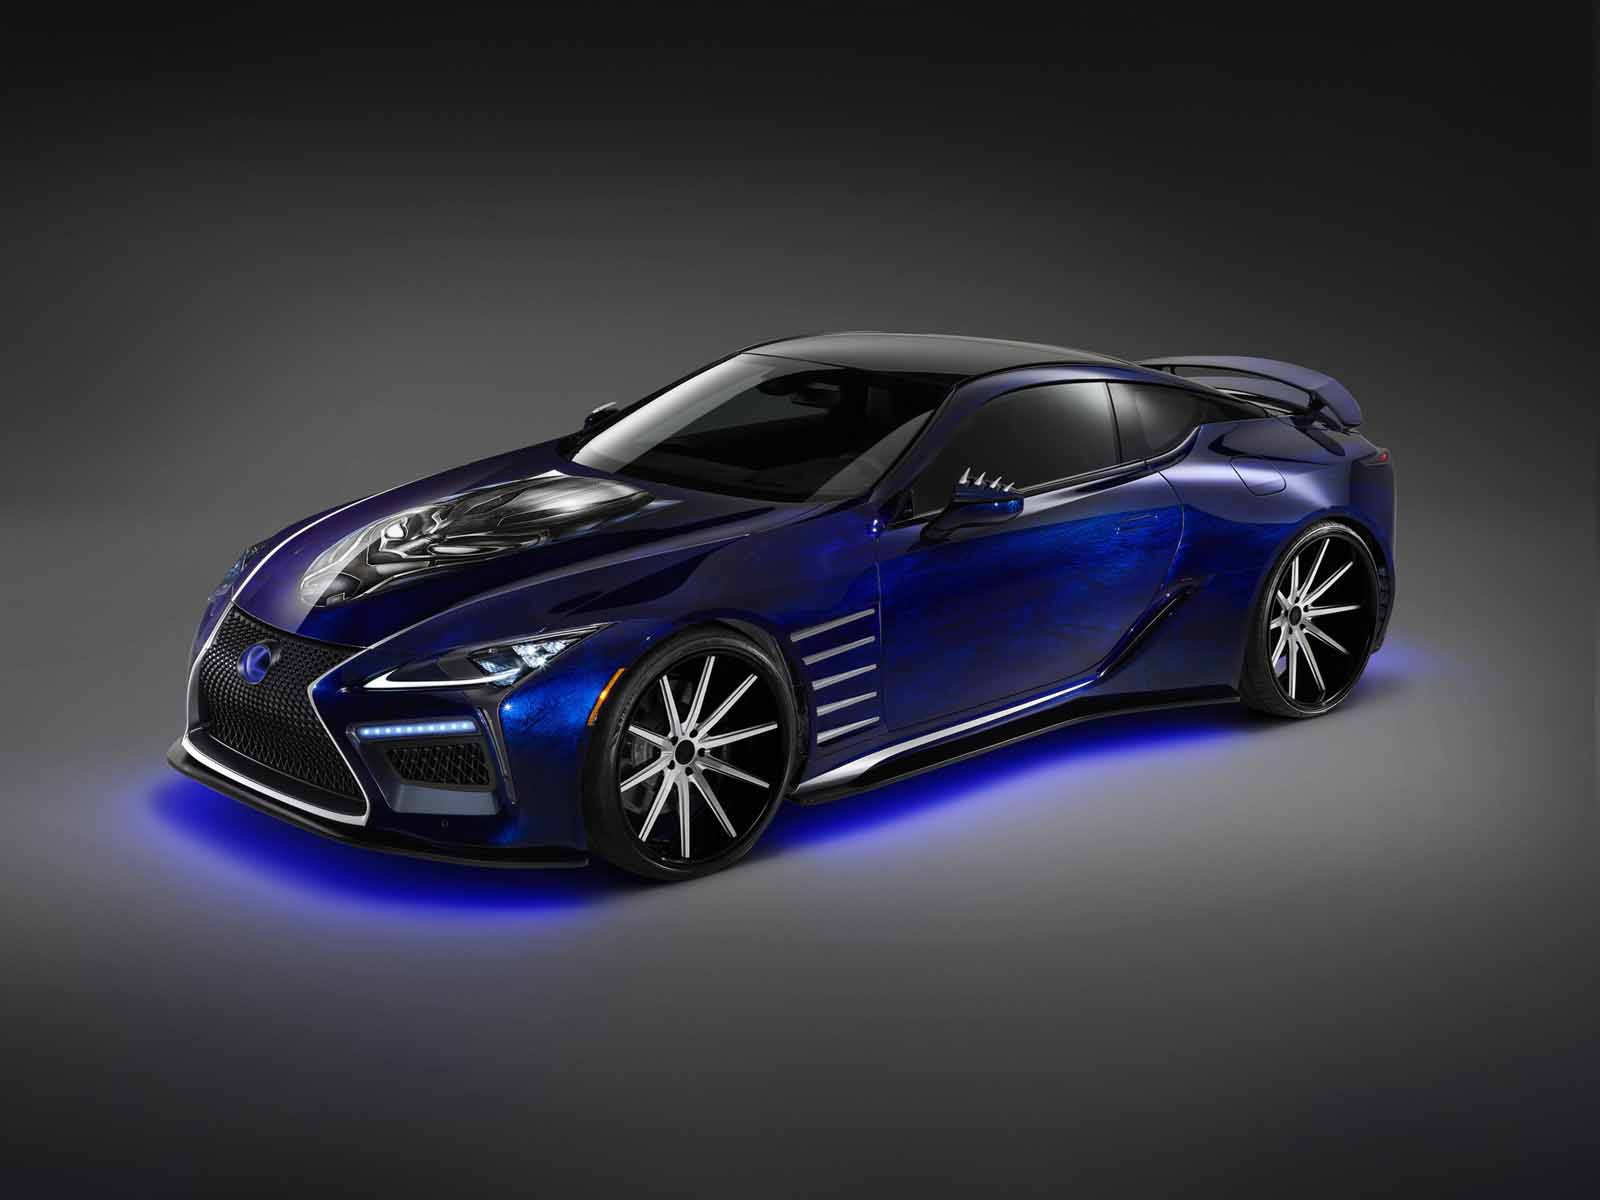 Toyota Supra Top View >> Lexus is Bringing a Black Panther Inspired LC 500 to SEMA » AutoGuide.com News